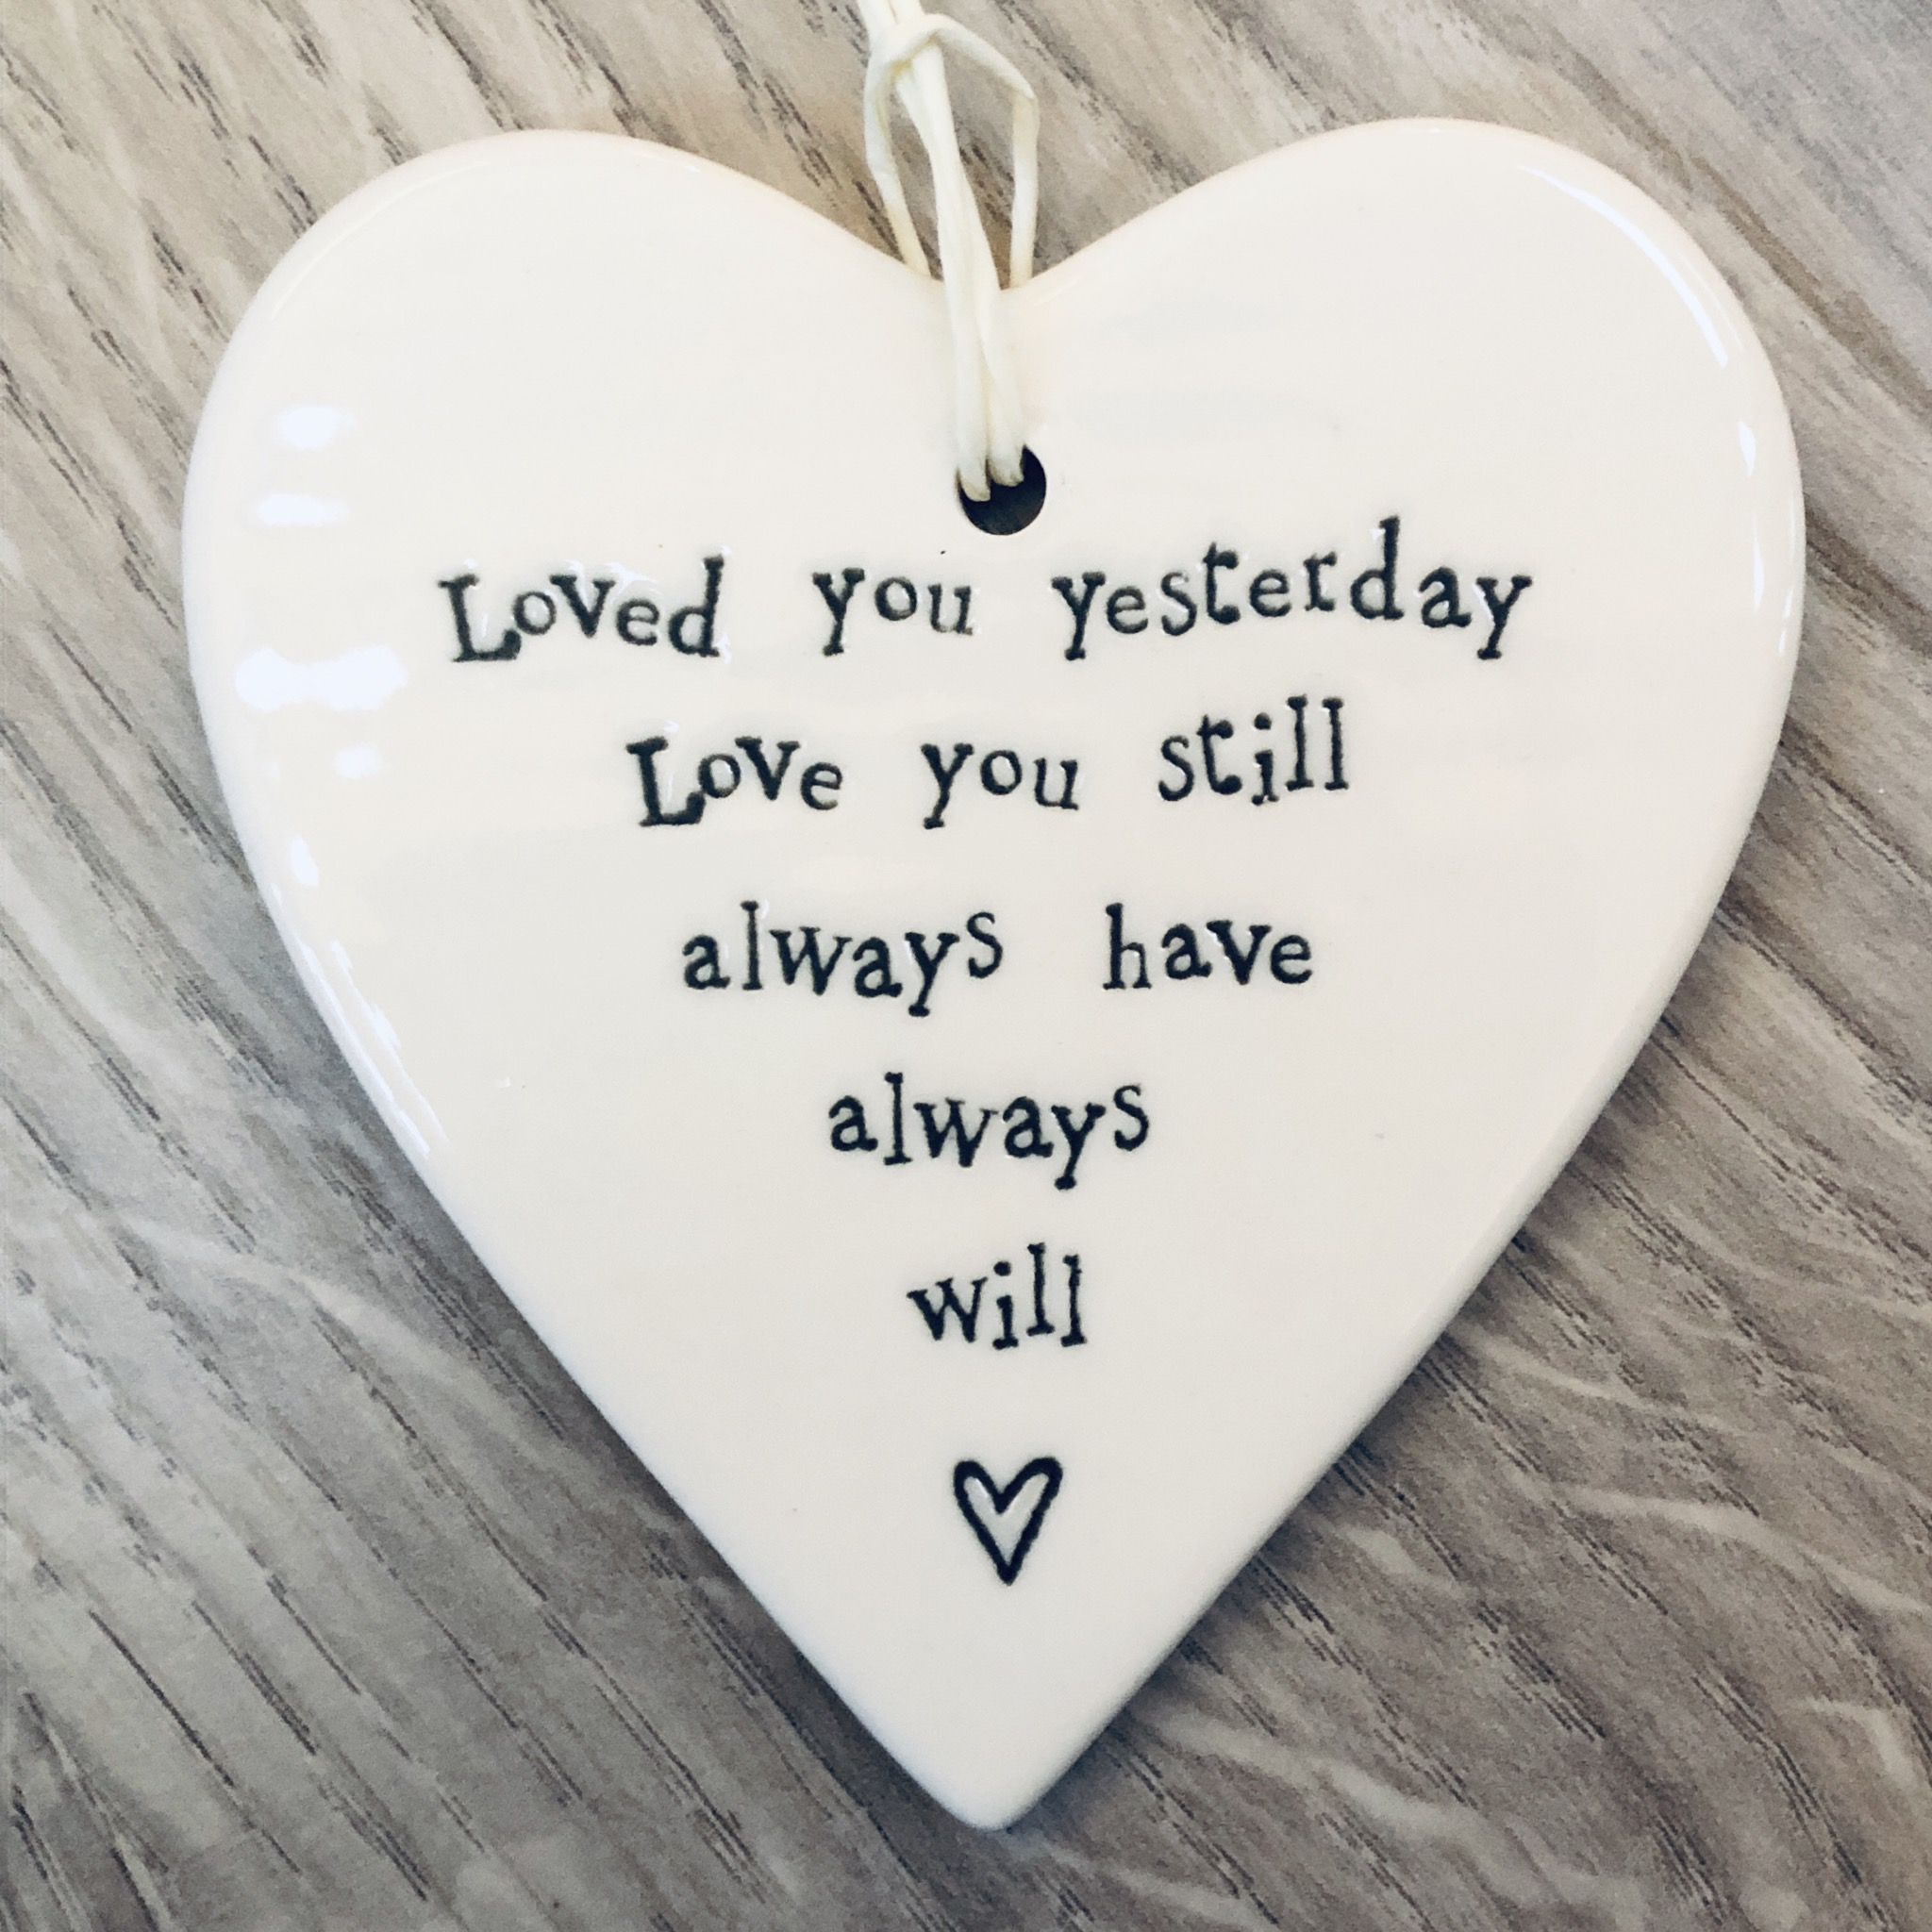 East of India porcelain hanging heart. Loved you yesterday love you still always have always will.